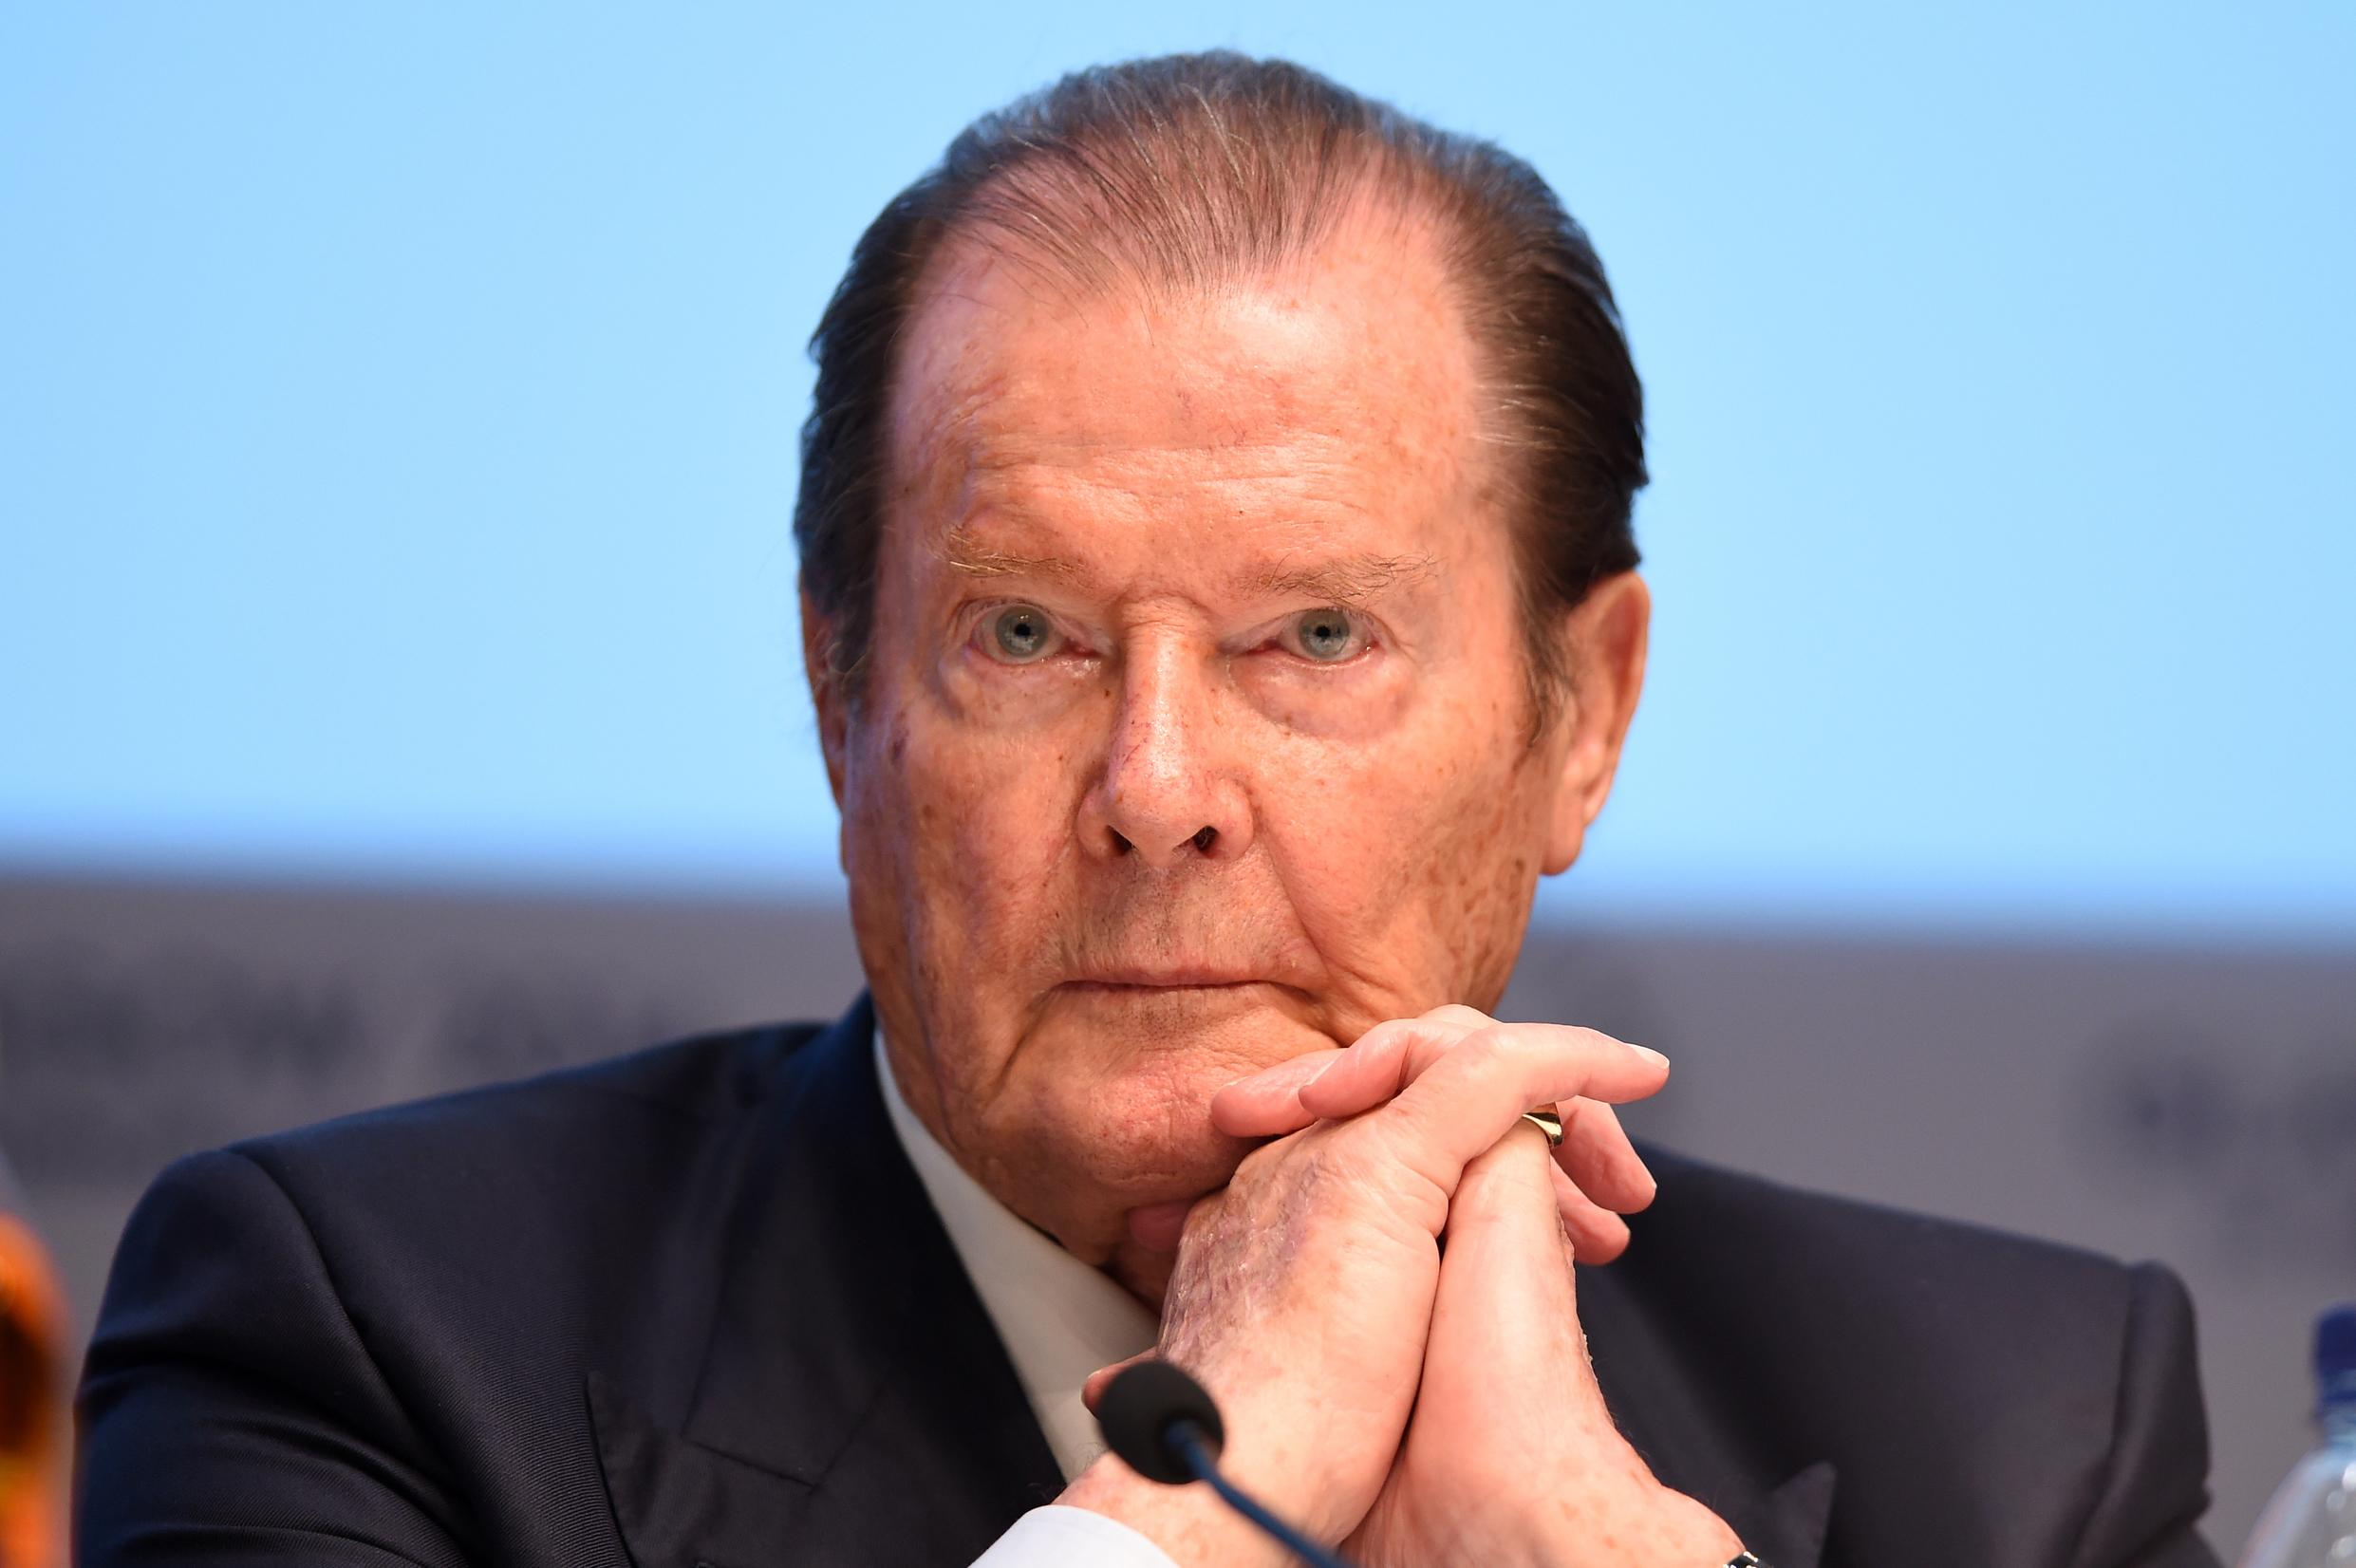 """<p>""""I'm definitely a spender, although I'm not an impulsive spender,"""" the James Bond actor Roger Moore revealed to The Sunday Times. """"If I go shopping, I usually know what I want before I go out. I'm not a very good saver because the lessons my father tried to instil in me about taking care of money had the opposite effect. I carry cash in my pocket as I always like to have it to hand, which means it also disappears easily as I spend it more quickly.""""</p>  <p>Advice from Kirsty MacDonald, spokesperson for accountancy practice Jackson Stephen LLP:</p>  <p>""""As James Bond, Roger Moore became iconic as a smooth operator. But there is nothing smooth about the way he is handling his cash here. There seems to be no control over it at all. Whilst it's hard to be sympathetic with multimillionaire film stars, Roger's cash leakages are probably losing him a lot more than he realises.""""</p>  <p></p>"""